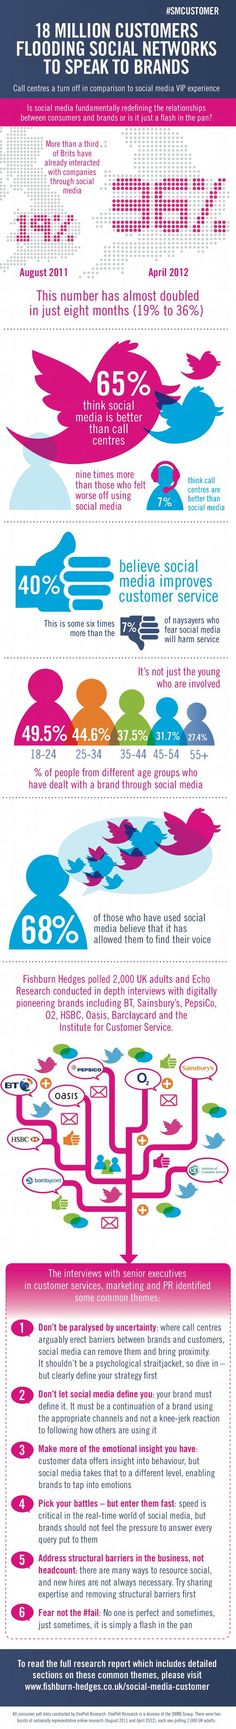 The Social Media Customer [Infographic]